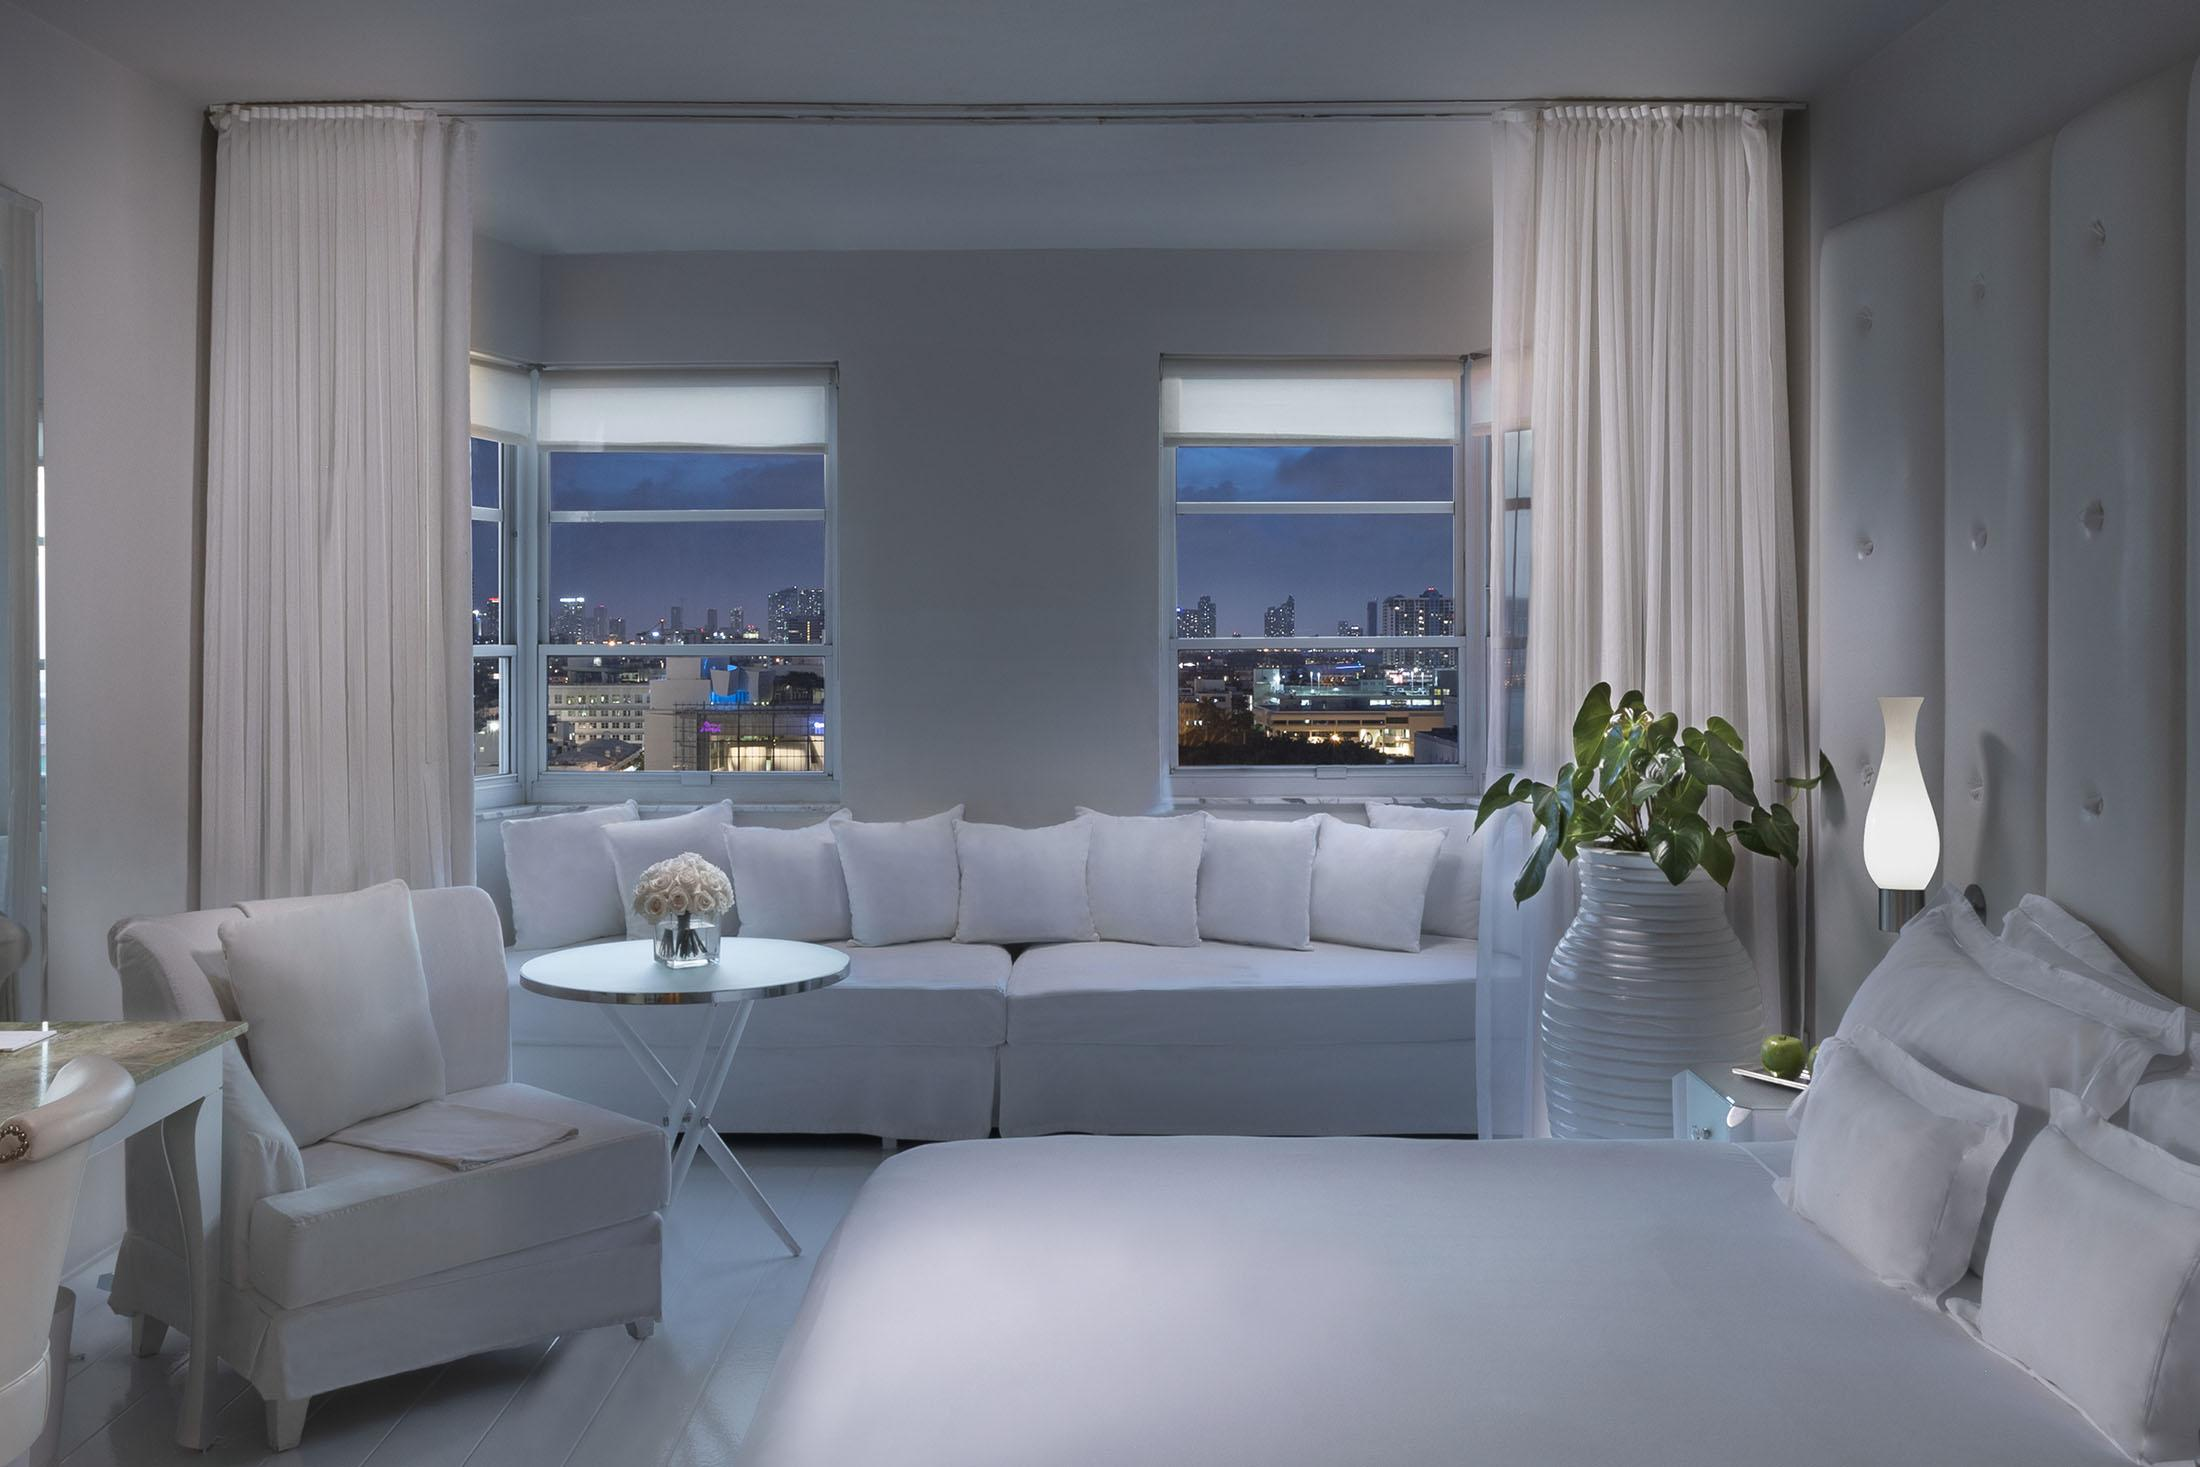 white bed and white sitting alcove in front of window with city view